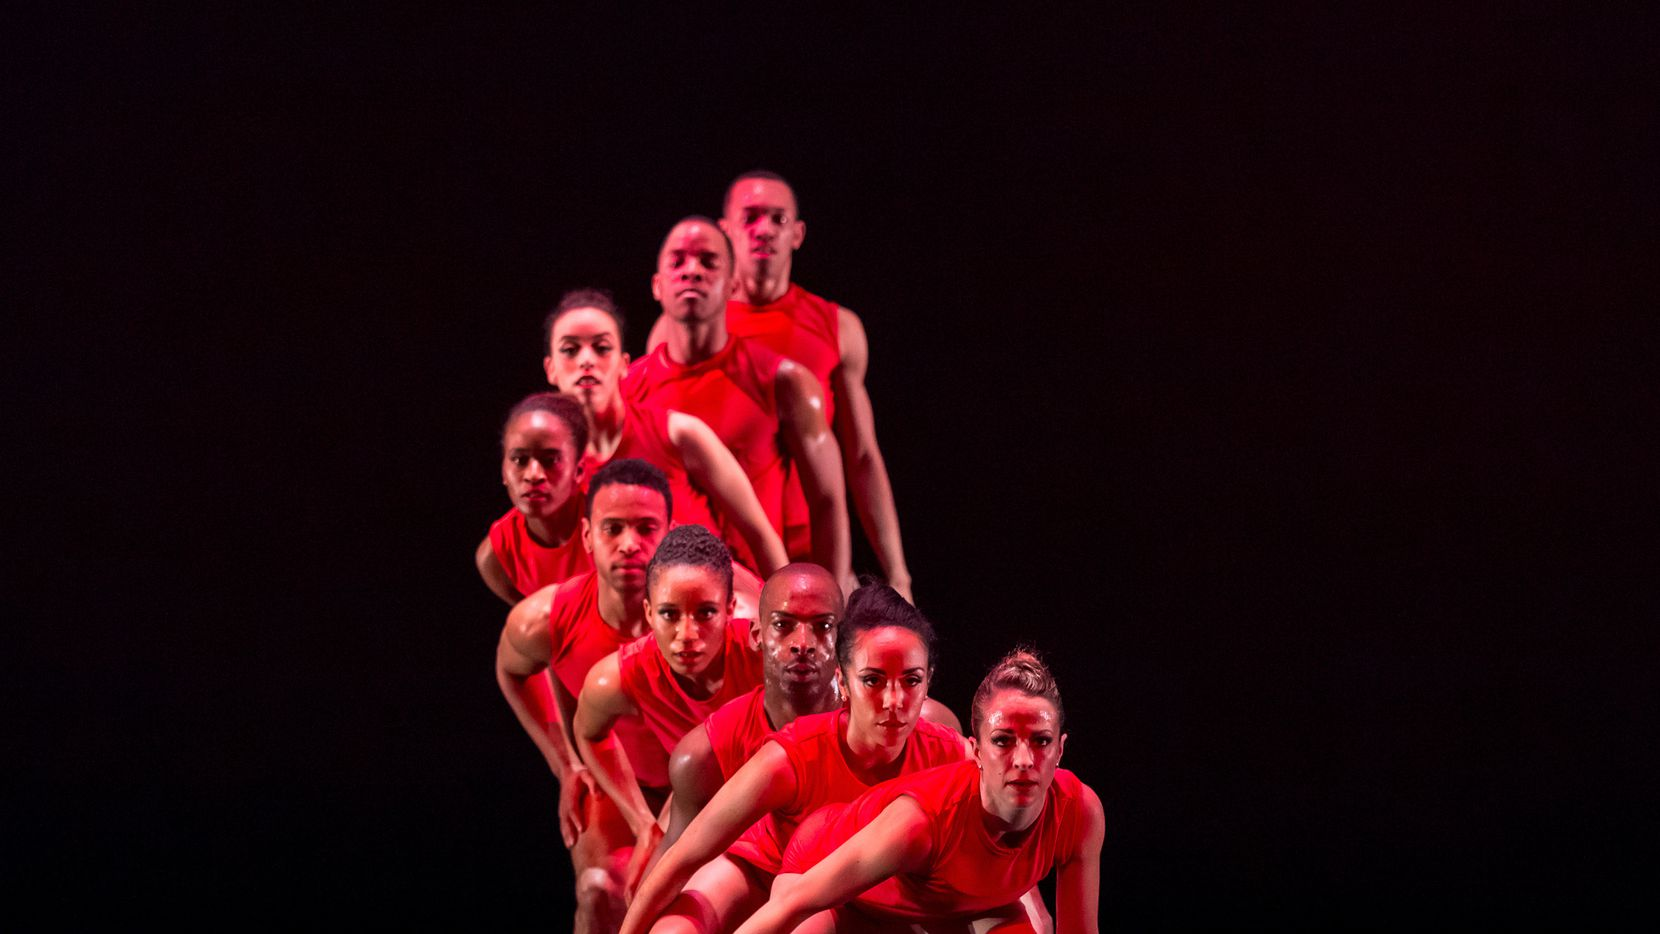 Dallas Black Dance Theatre performing Bruce Wood's Red at a dress rehearsal. Photo by Sharen Bradford/The Dancing Image